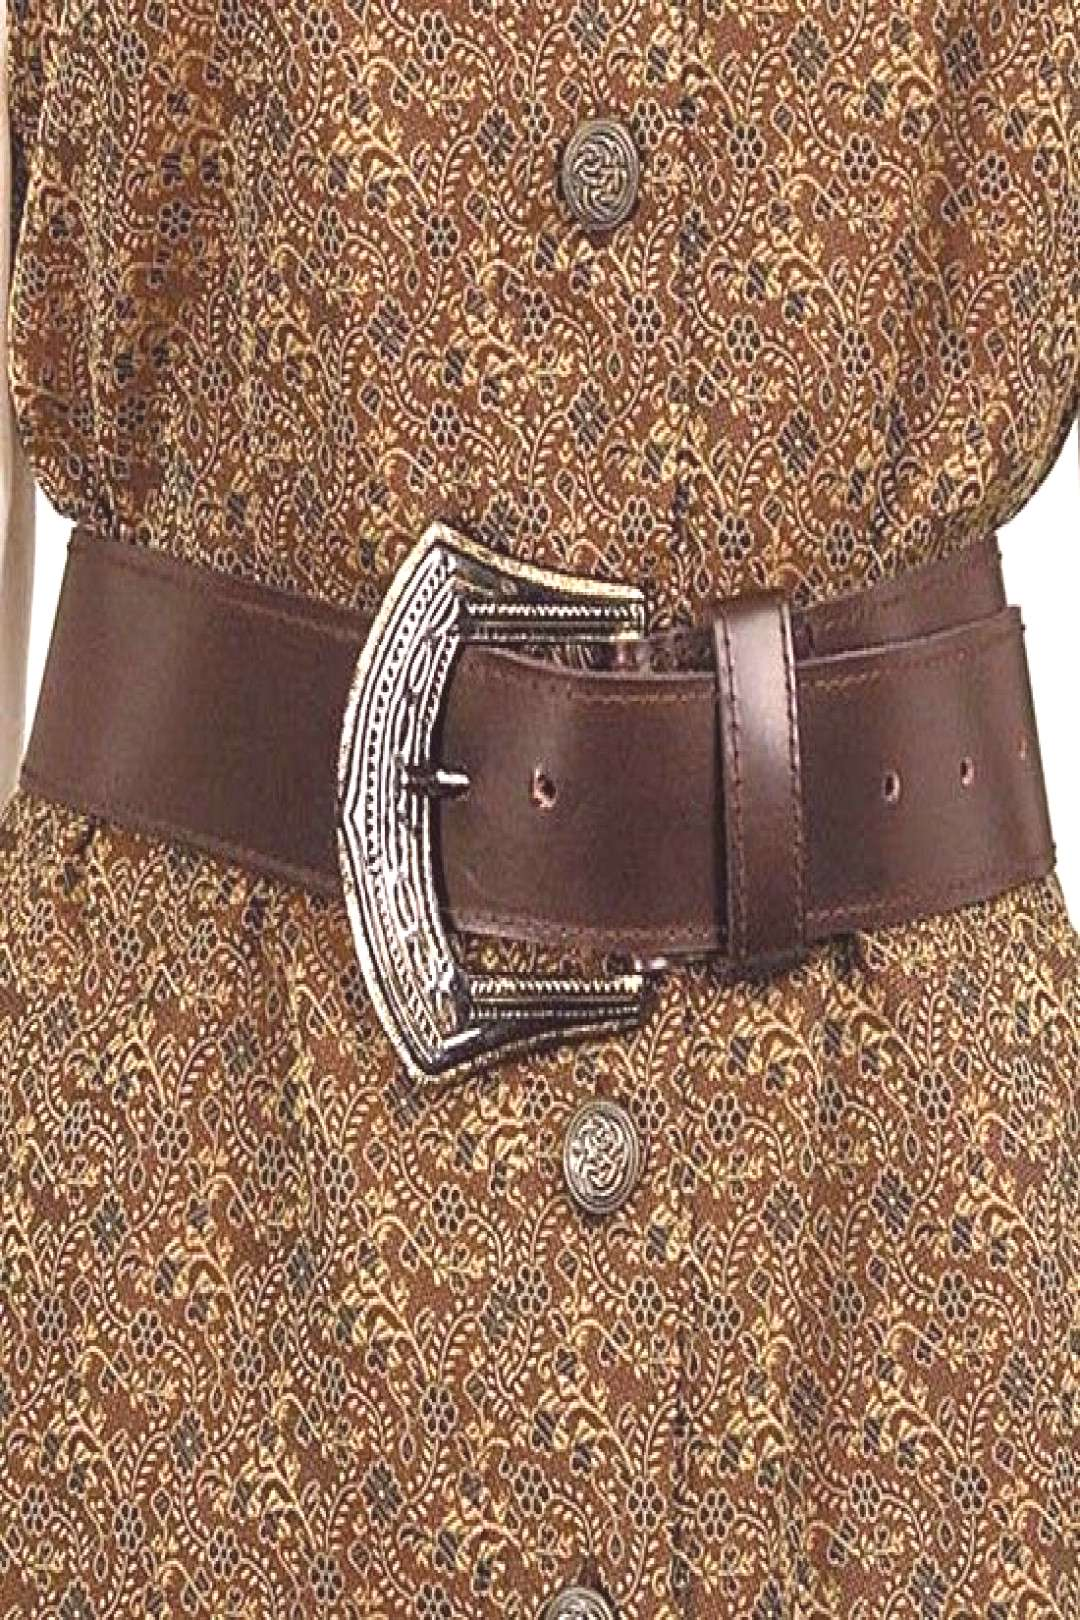 carries womens pirate costumes and accessories, such as this Mary Read Pirate Belt.